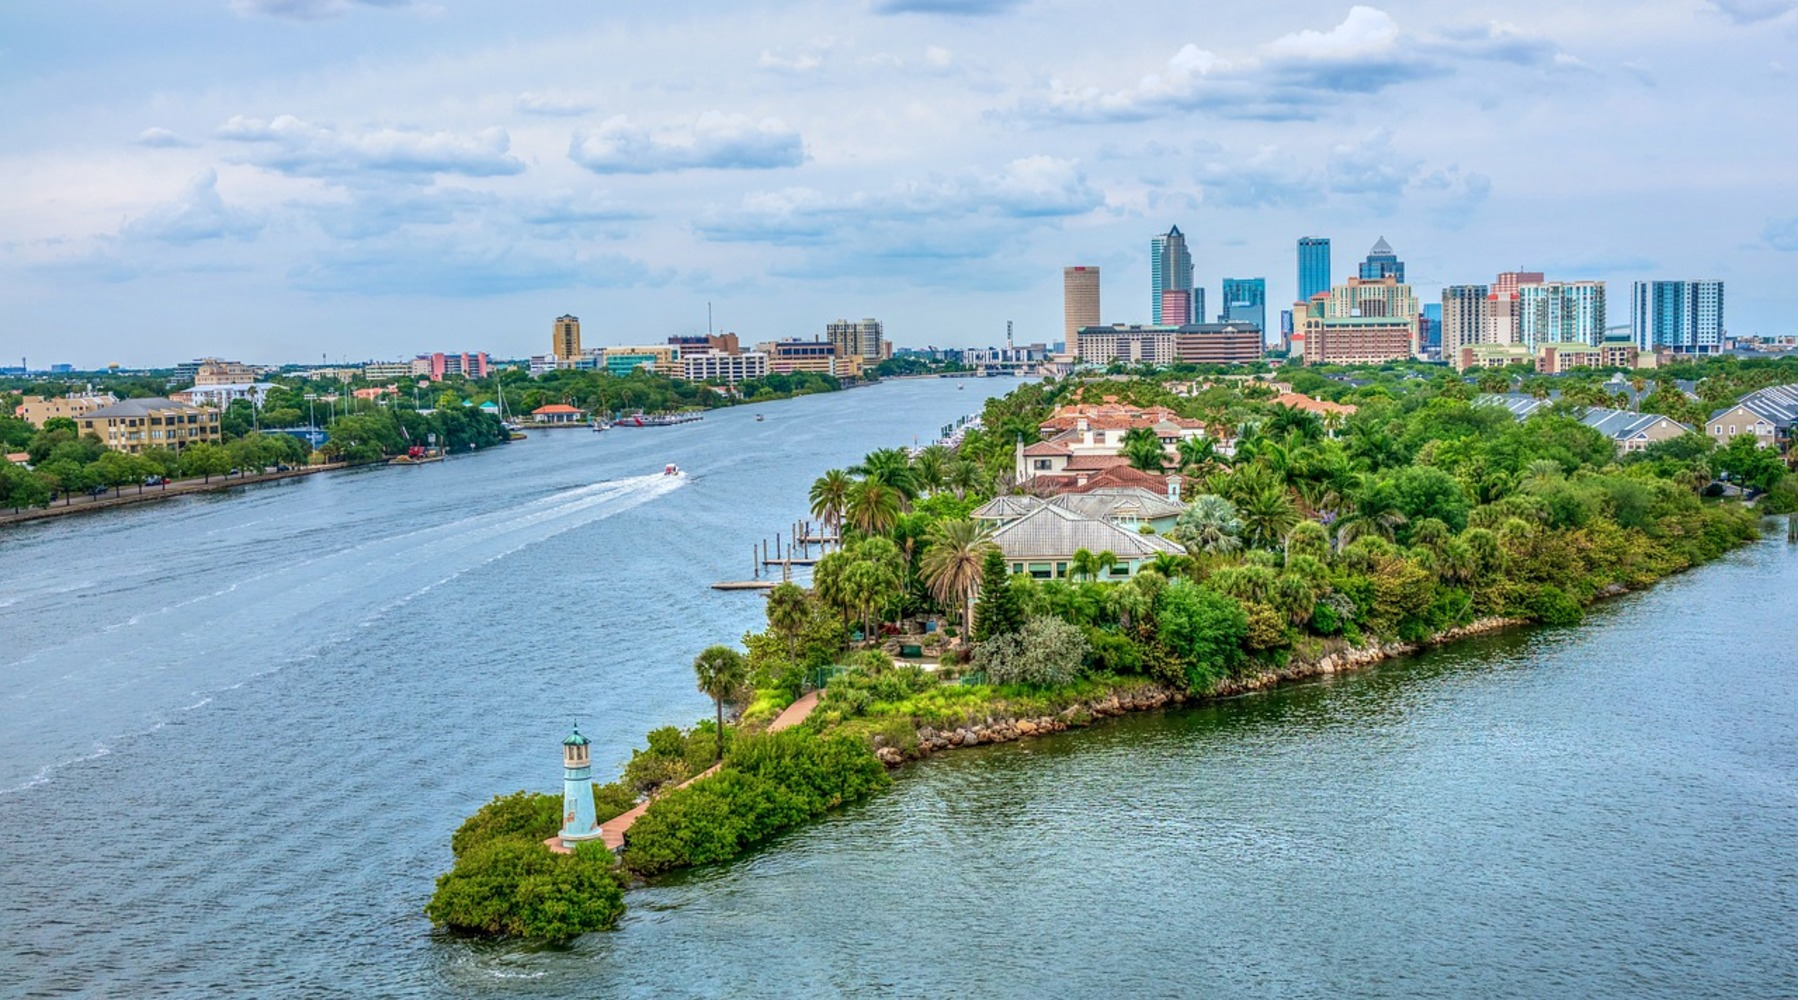 Image showing the cityscape of Tampa Florida